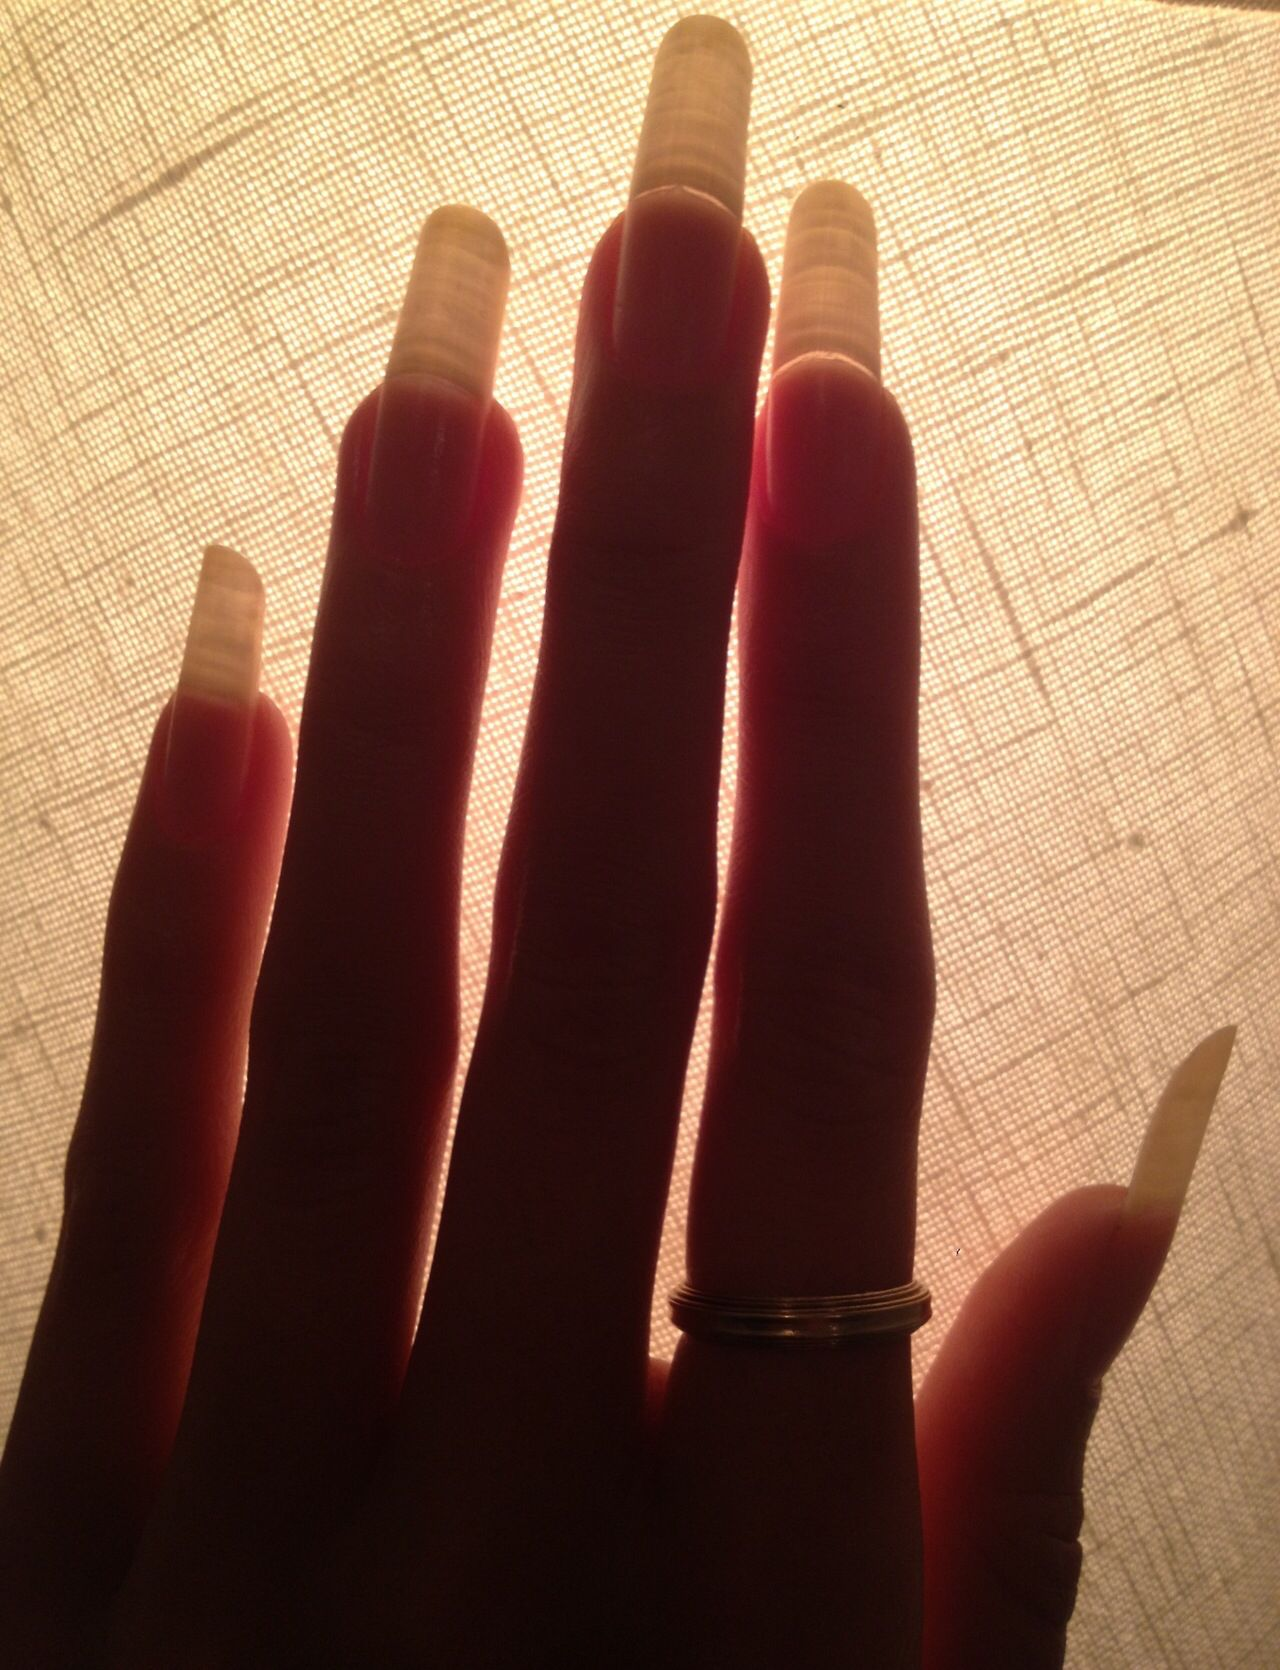 Very long round nails you can see the growth lines | Natural Nails ...